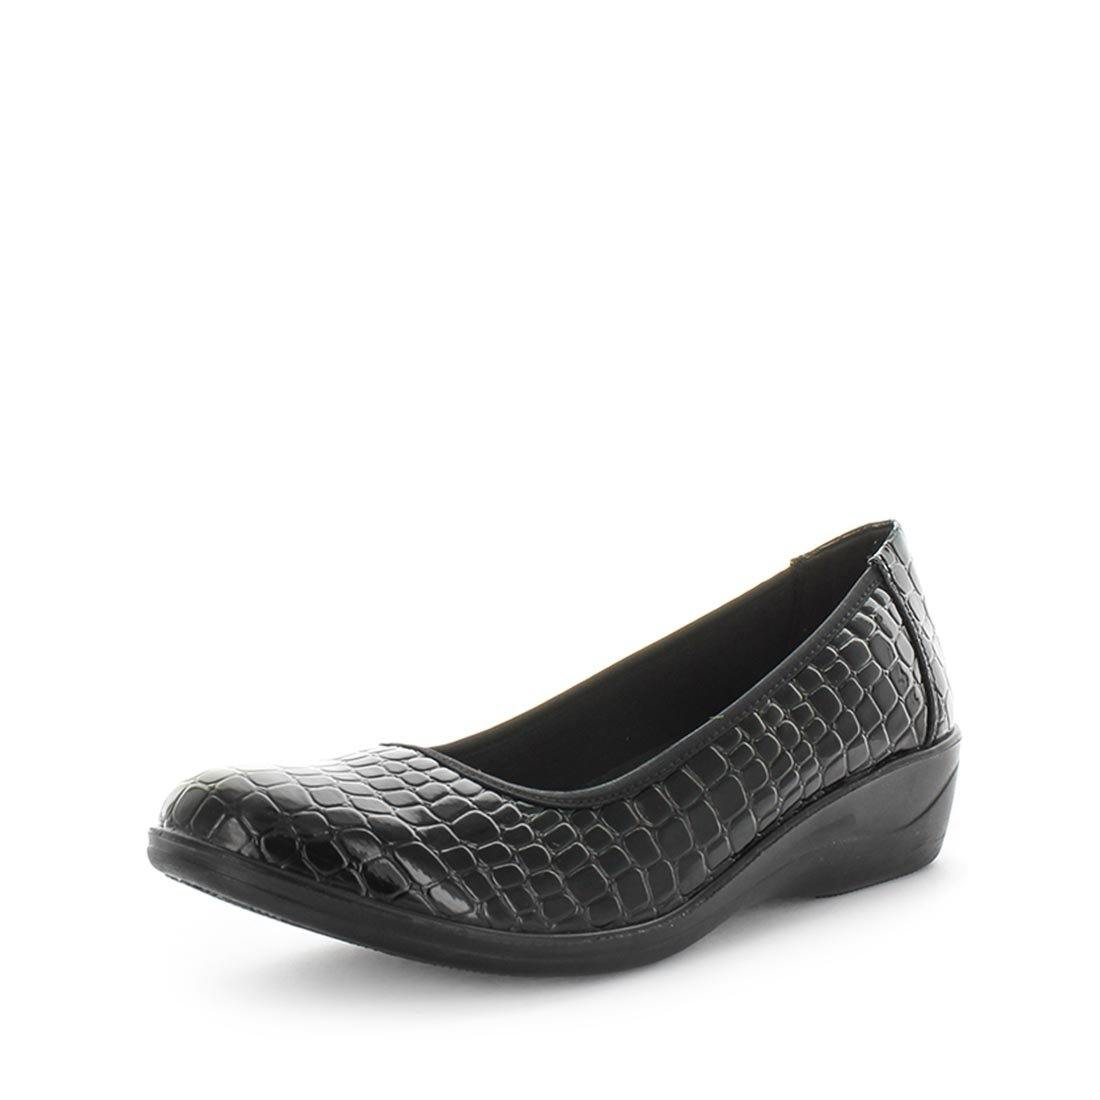 MARTI by AEROCUSHION - iShoes - What's New, What's New: Women's New Arrivals, Women's Shoes, Women's Shoes: Flats, Women's Shoes: Women's Work Shoes - FOOTWEAR-FOOTWEAR